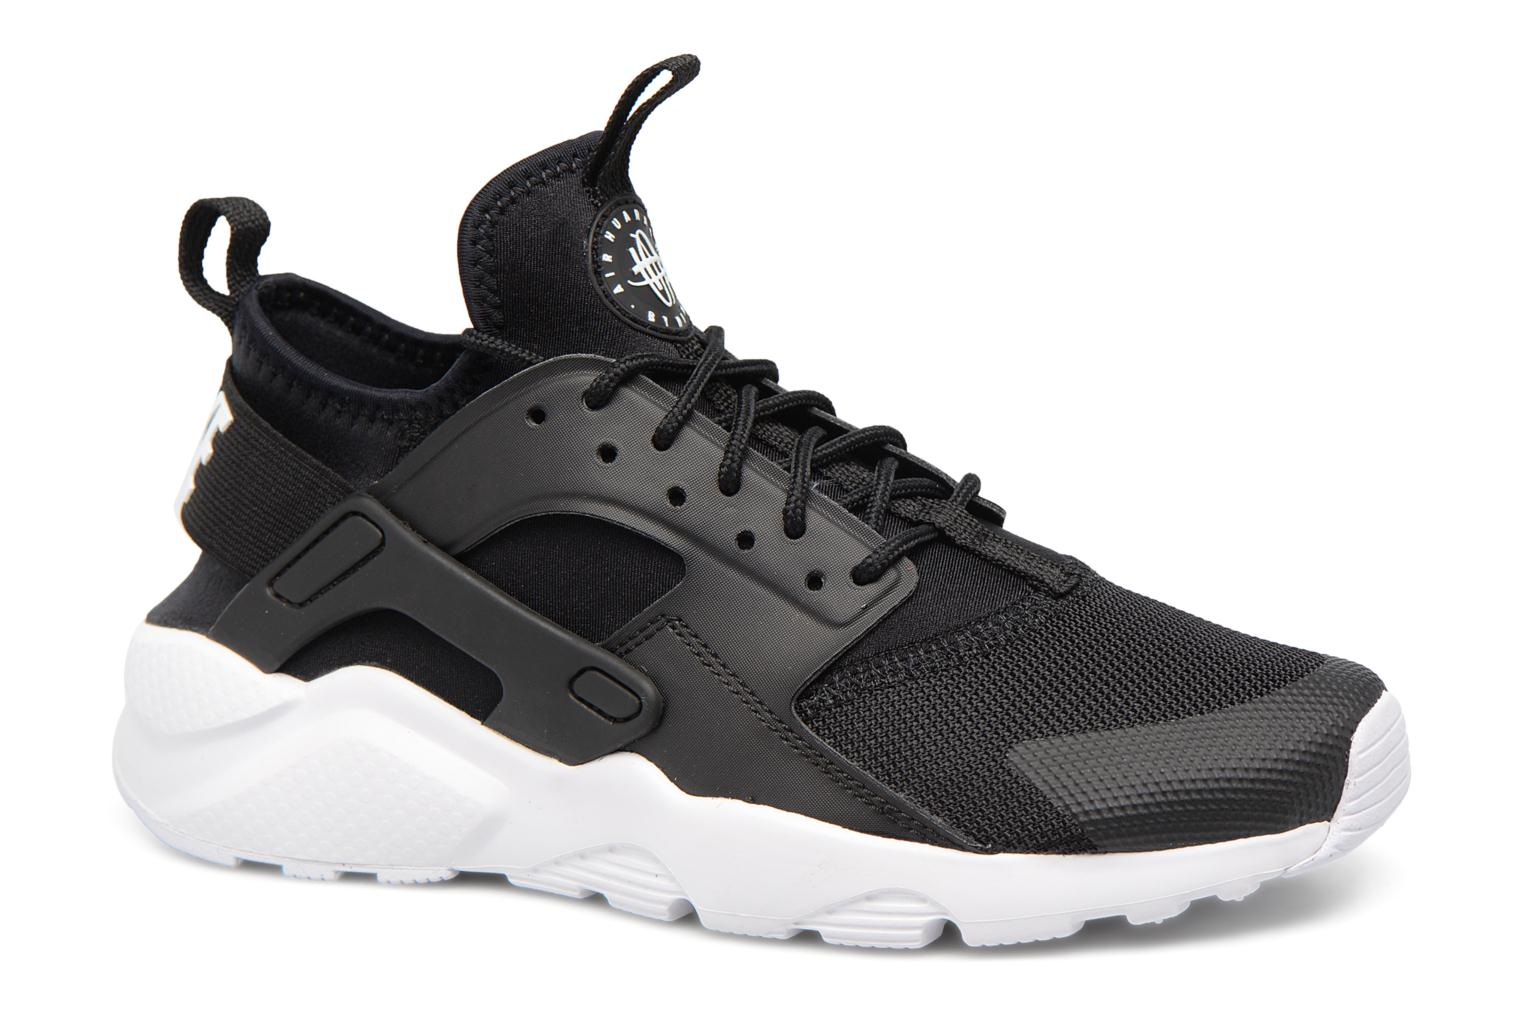 Nike Air Huarache Run Ultra Gs Black/white